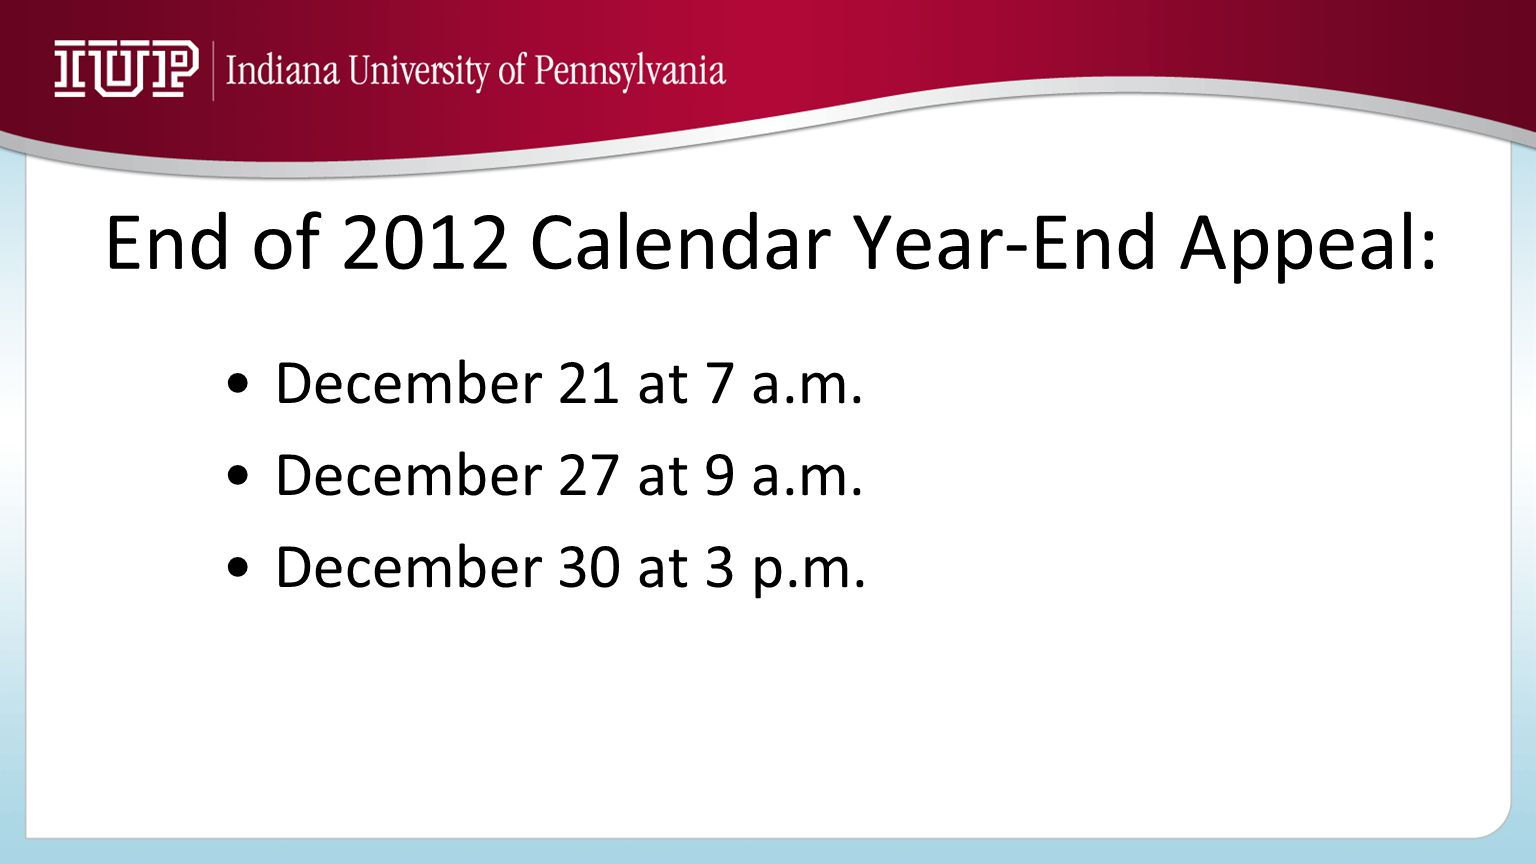 End of 2012 Calendar Year-End Appeal: December 21 at 7 a.m. December 27 at 9 a.m. December 30 at 3 p.m.